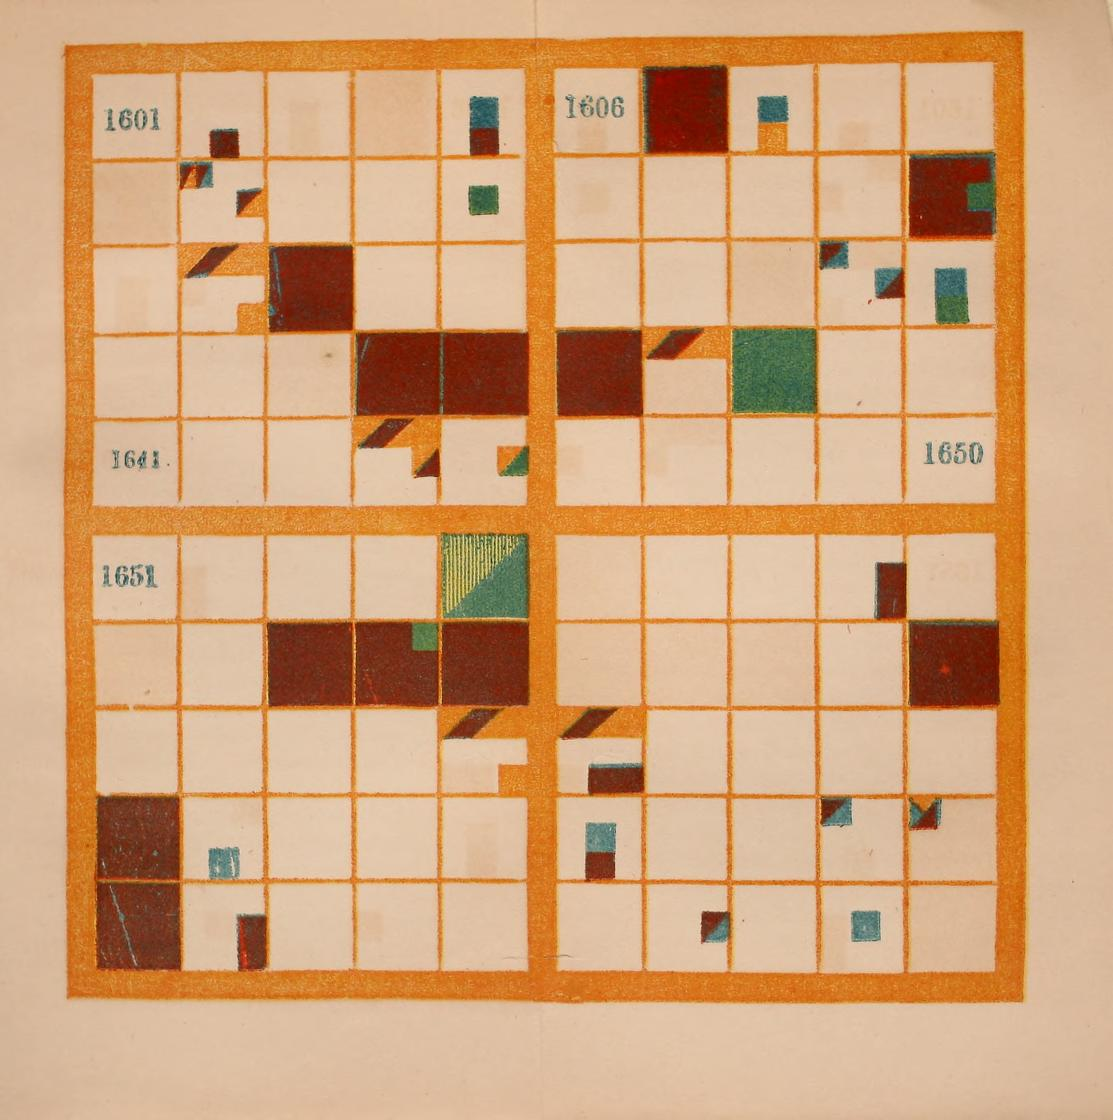 One of Peabody's historical charts visualizing a series of historical events. Composed of squares within squares, the entire chart (or largest square) represents a century, the four quadrants provide visual aide to locate the 10x10 or 100 squares that represent a year, and the smallest squares, 3x3 or 9 within each year, represent types of events. Color represents different countries.